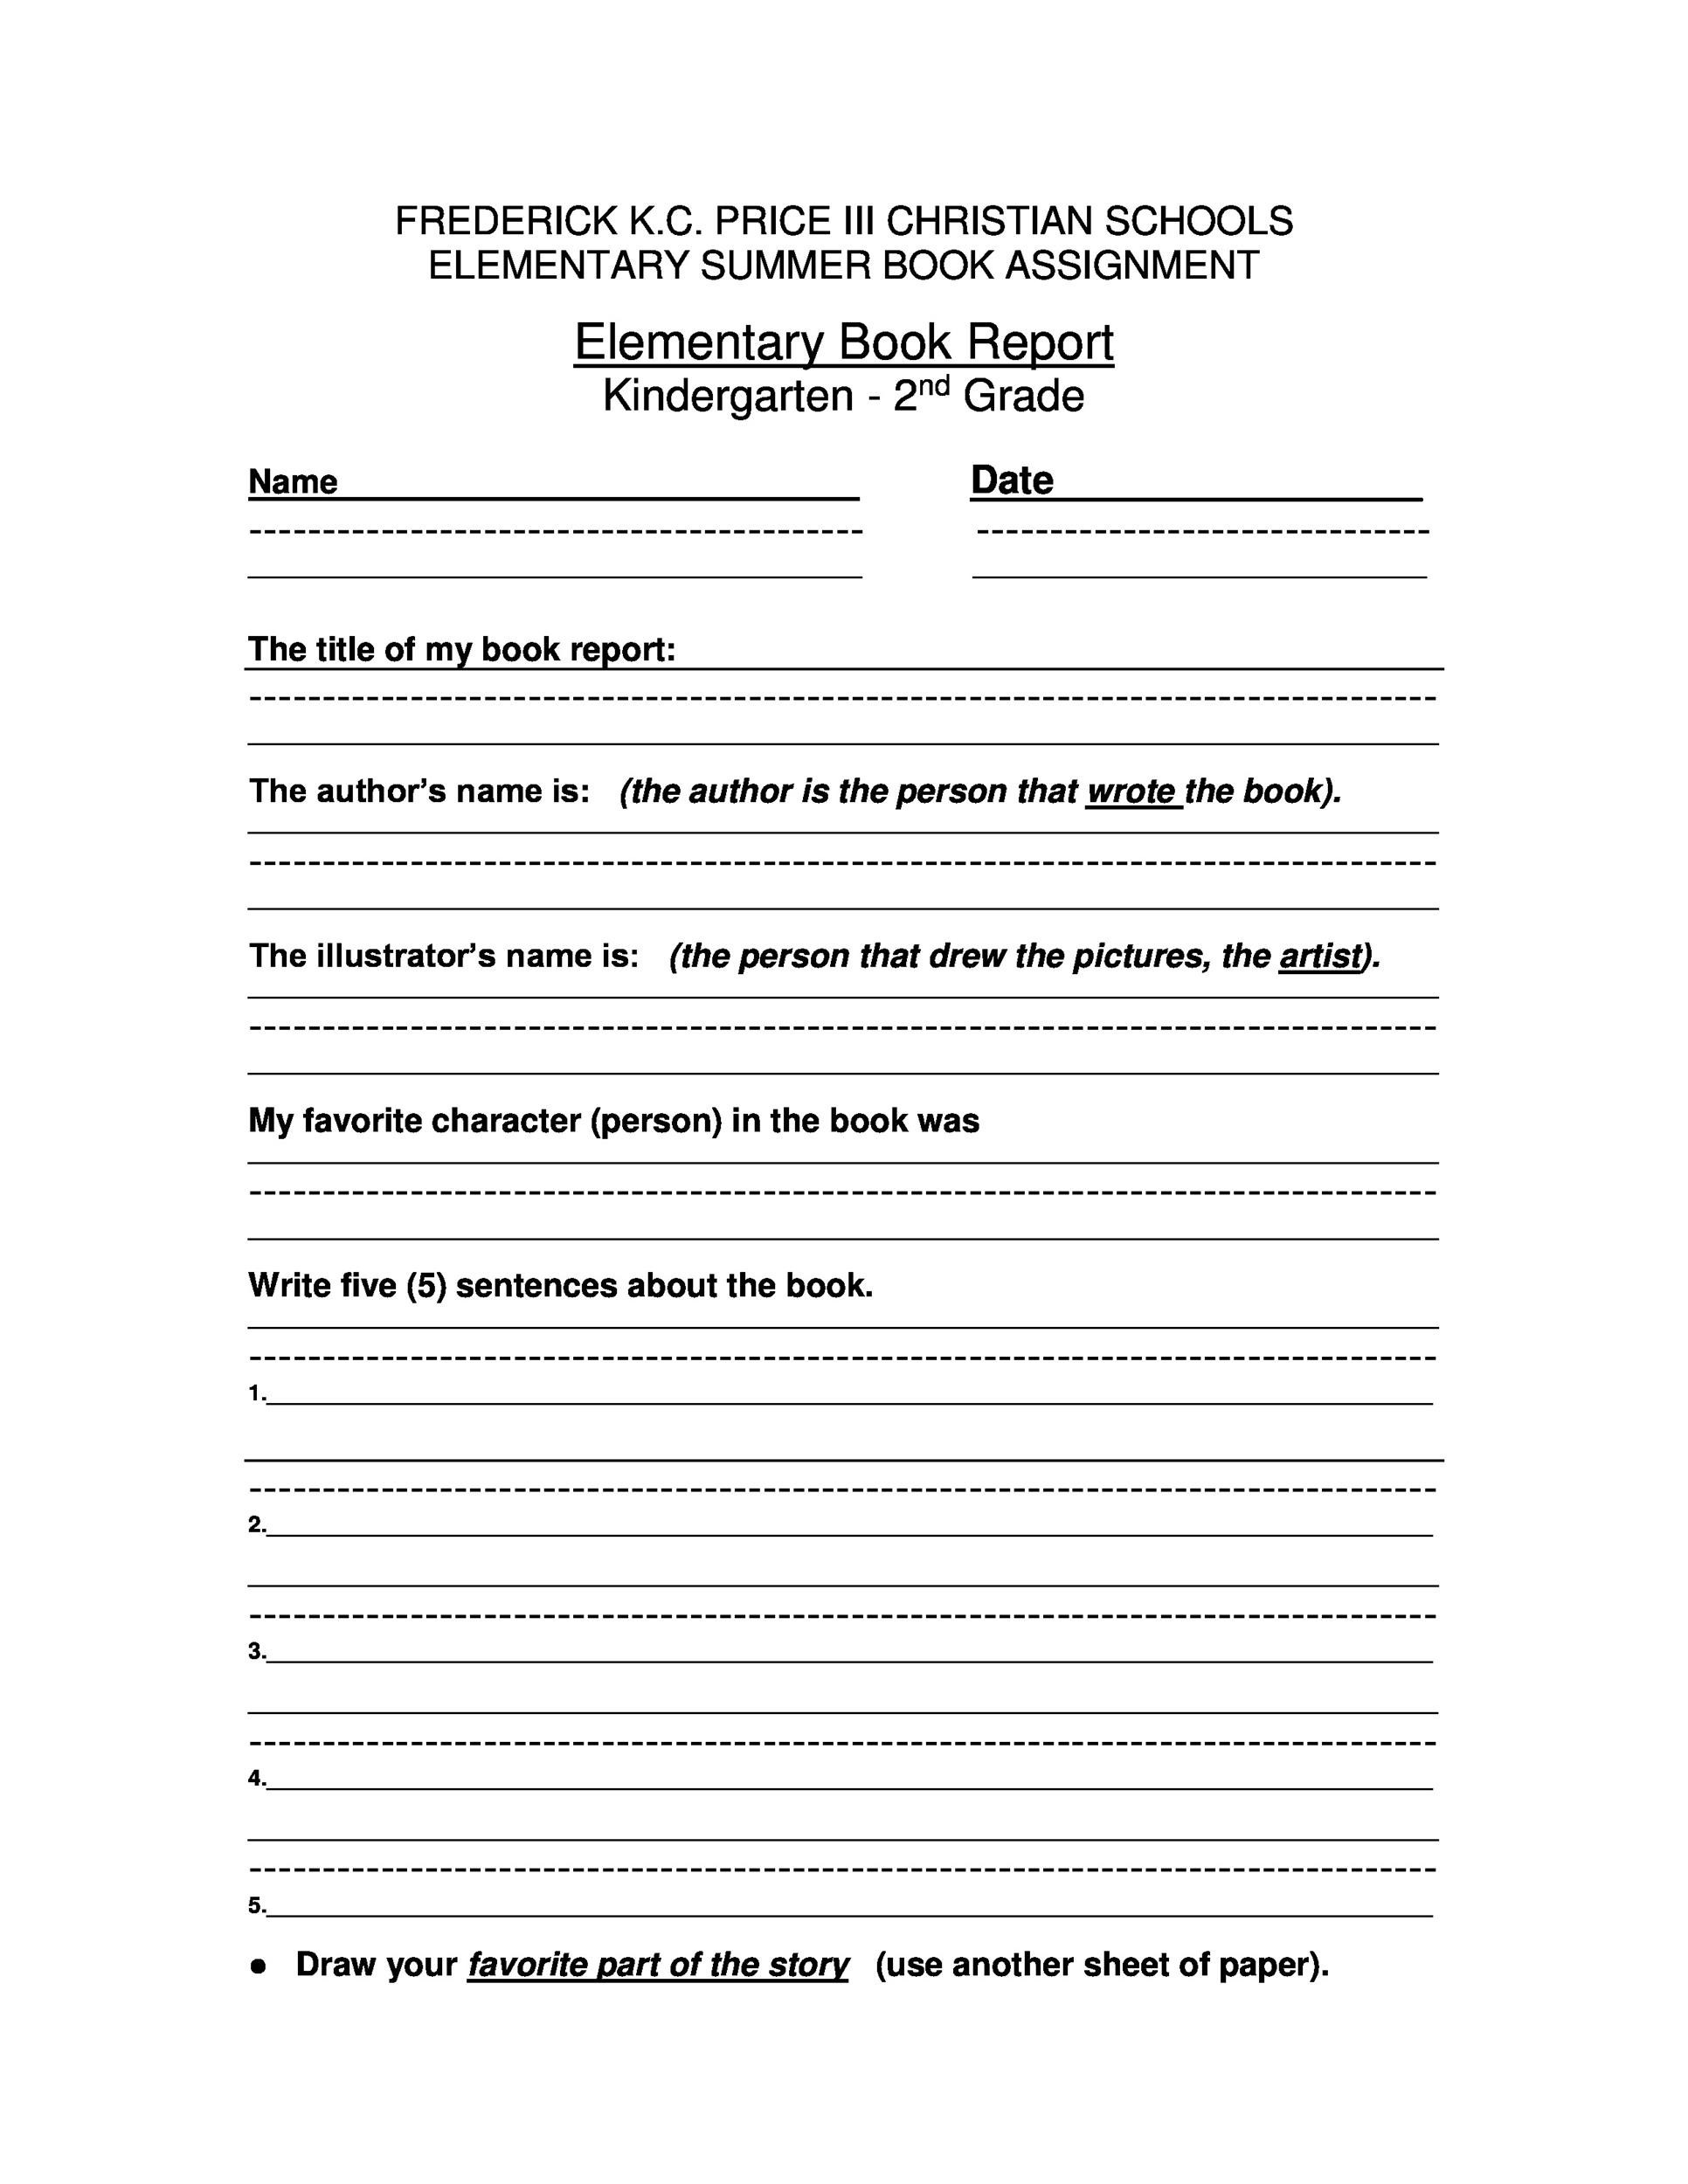 apa format book report template